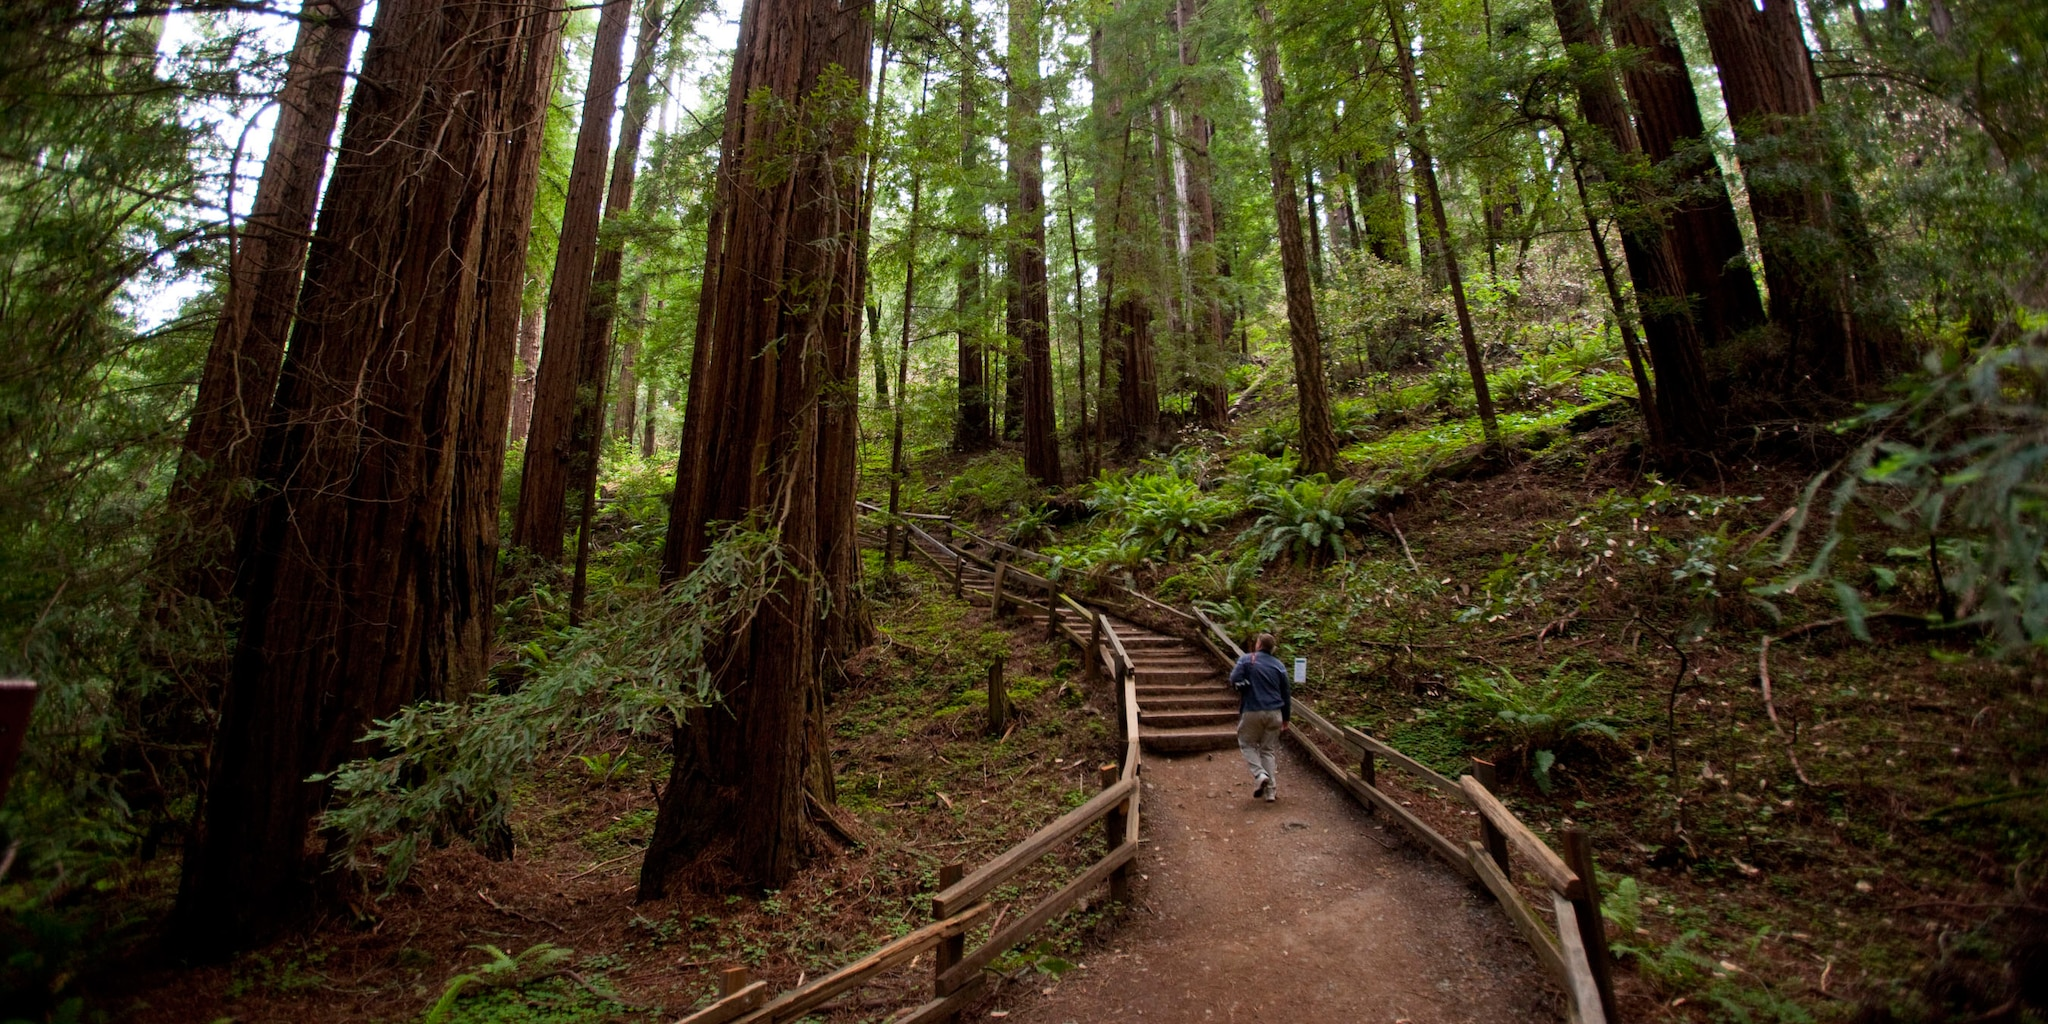 A man walks amongst the giant redwood trees in Muir Woods